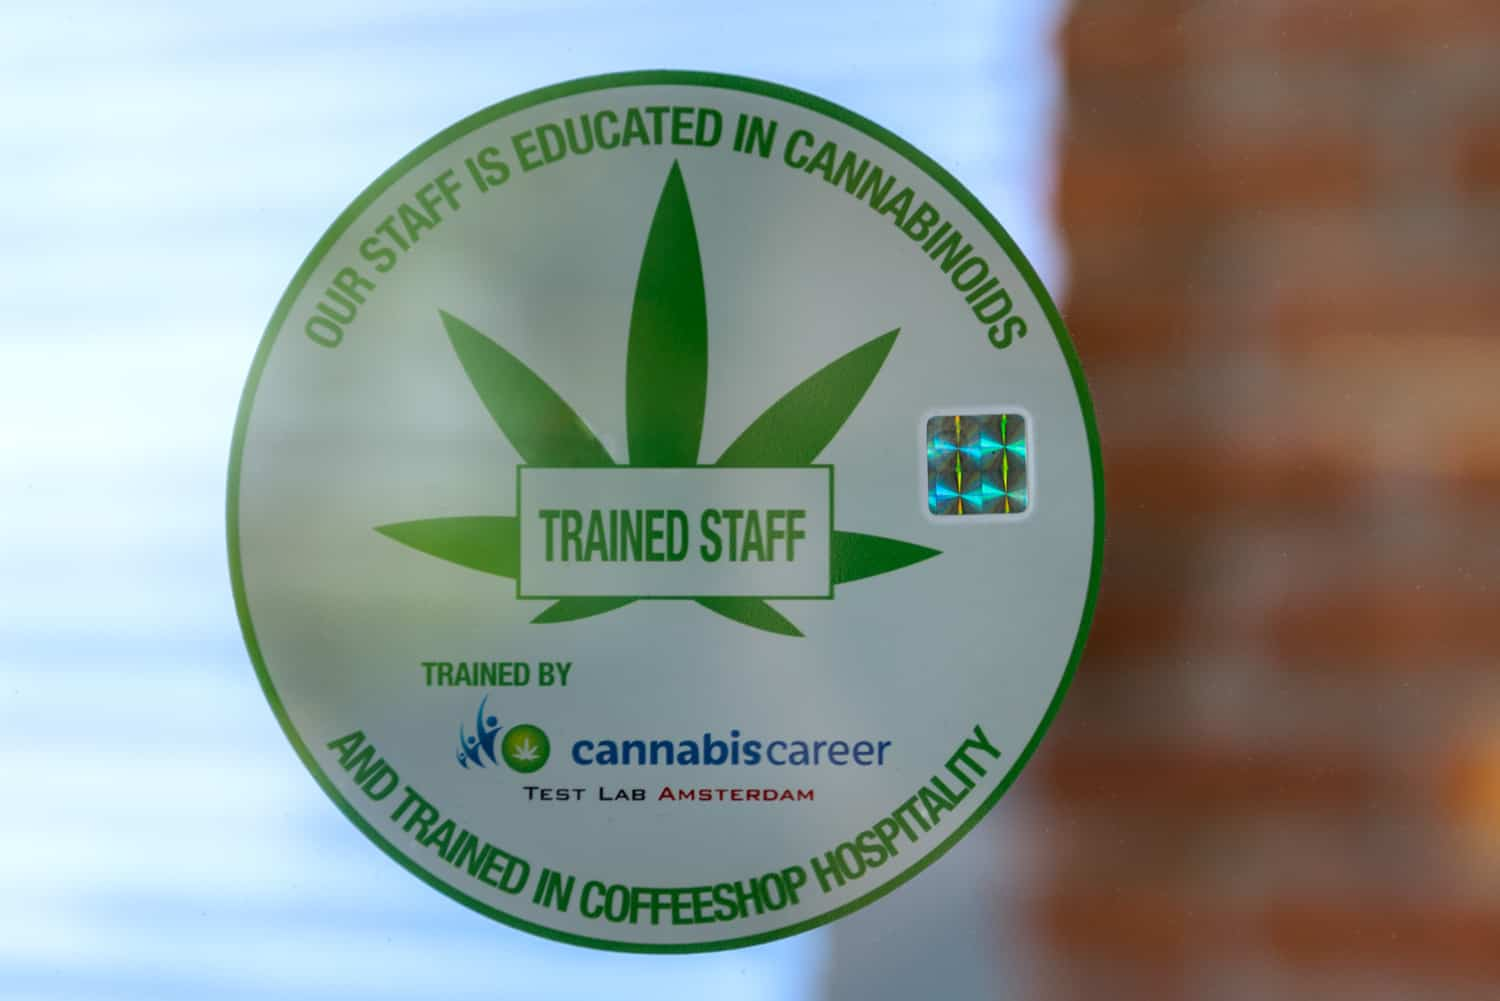 Coffeeshop Johnny raising the Awareness of our customers via our Cannabis Career & Test Lab Amsterdam trained staff